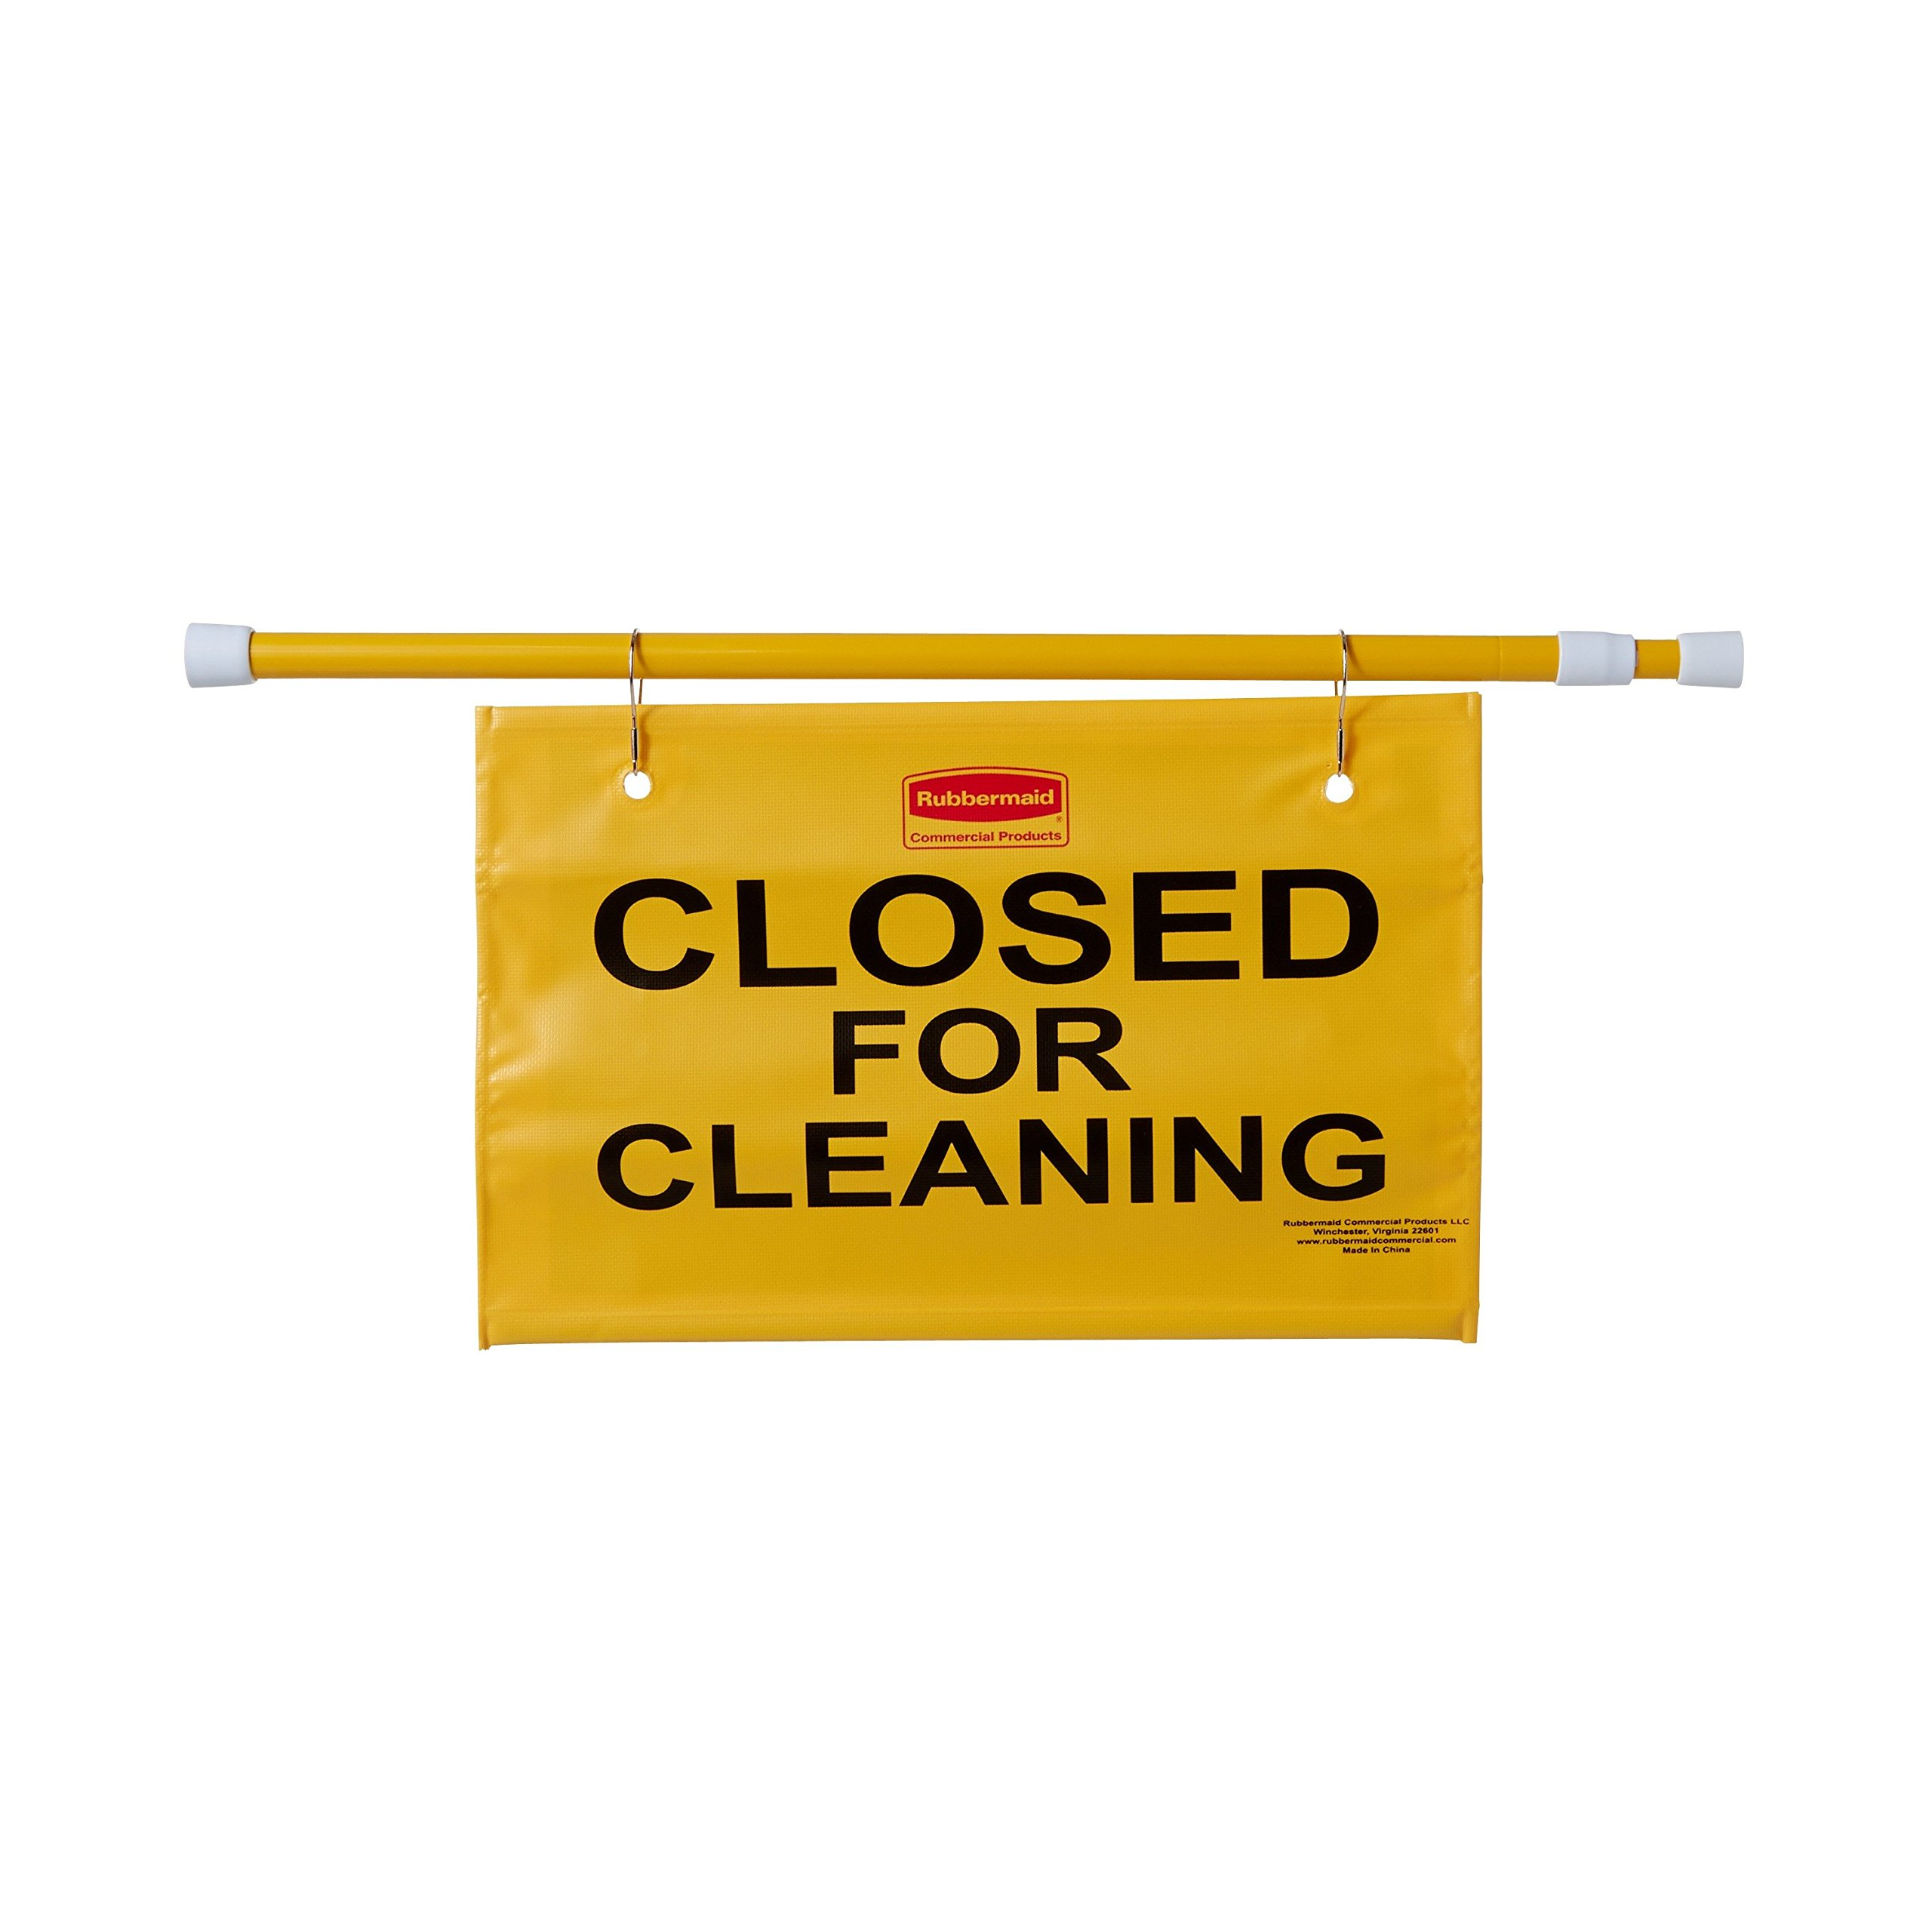 Rubbermaid Commercial Extend-to-Fit ''Closed For Cleaning'' Hanging Doorway Safety Sign, Yellow (FG9S1500YEL)